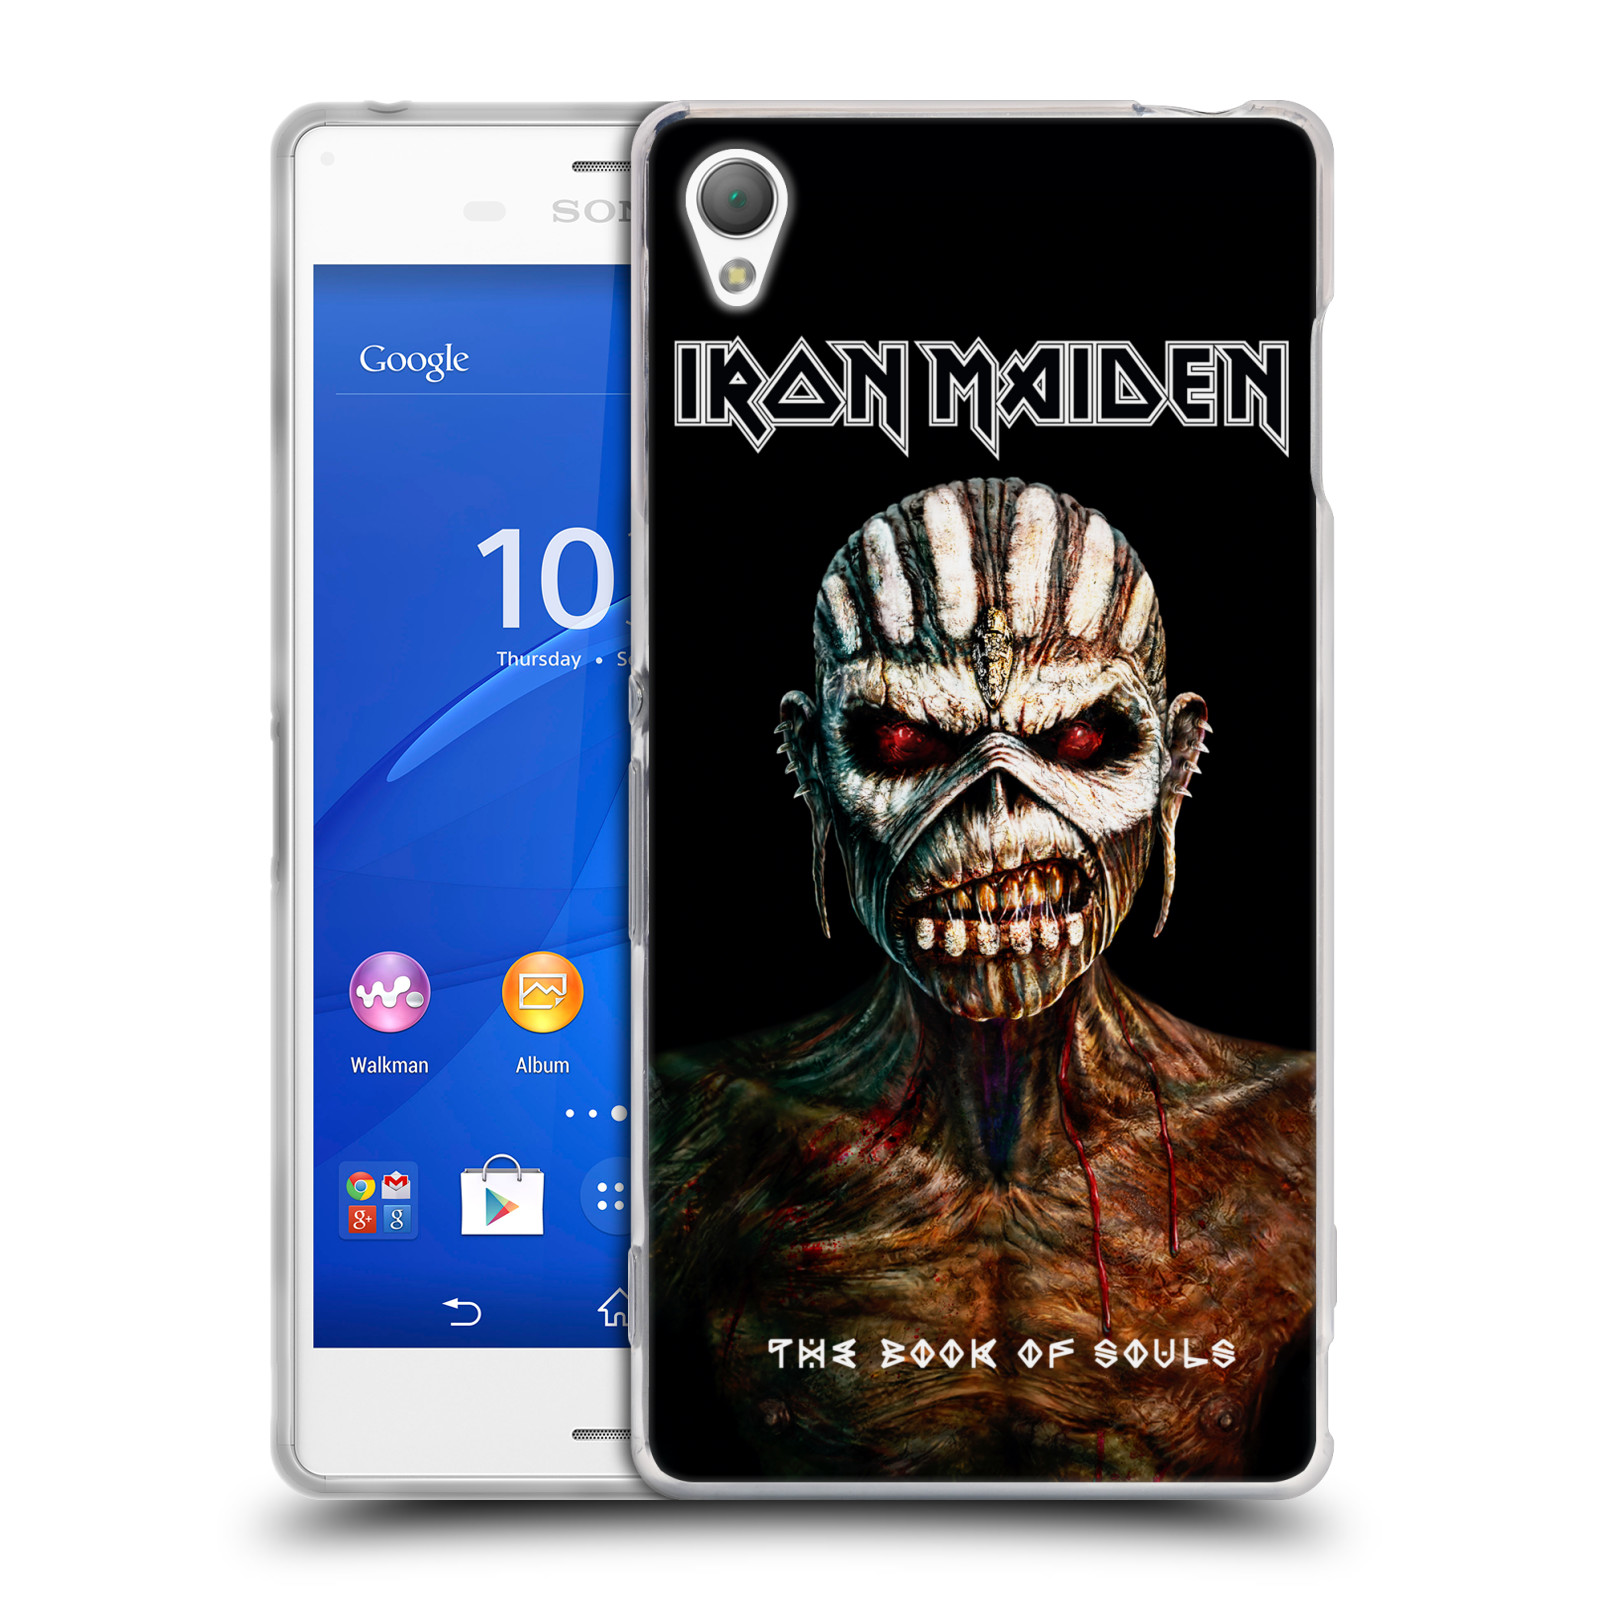 Silikonové pouzdro na mobil Sony Xperia Z3 D6603 HEAD CASE - Iron Maiden - The Book Of Souls